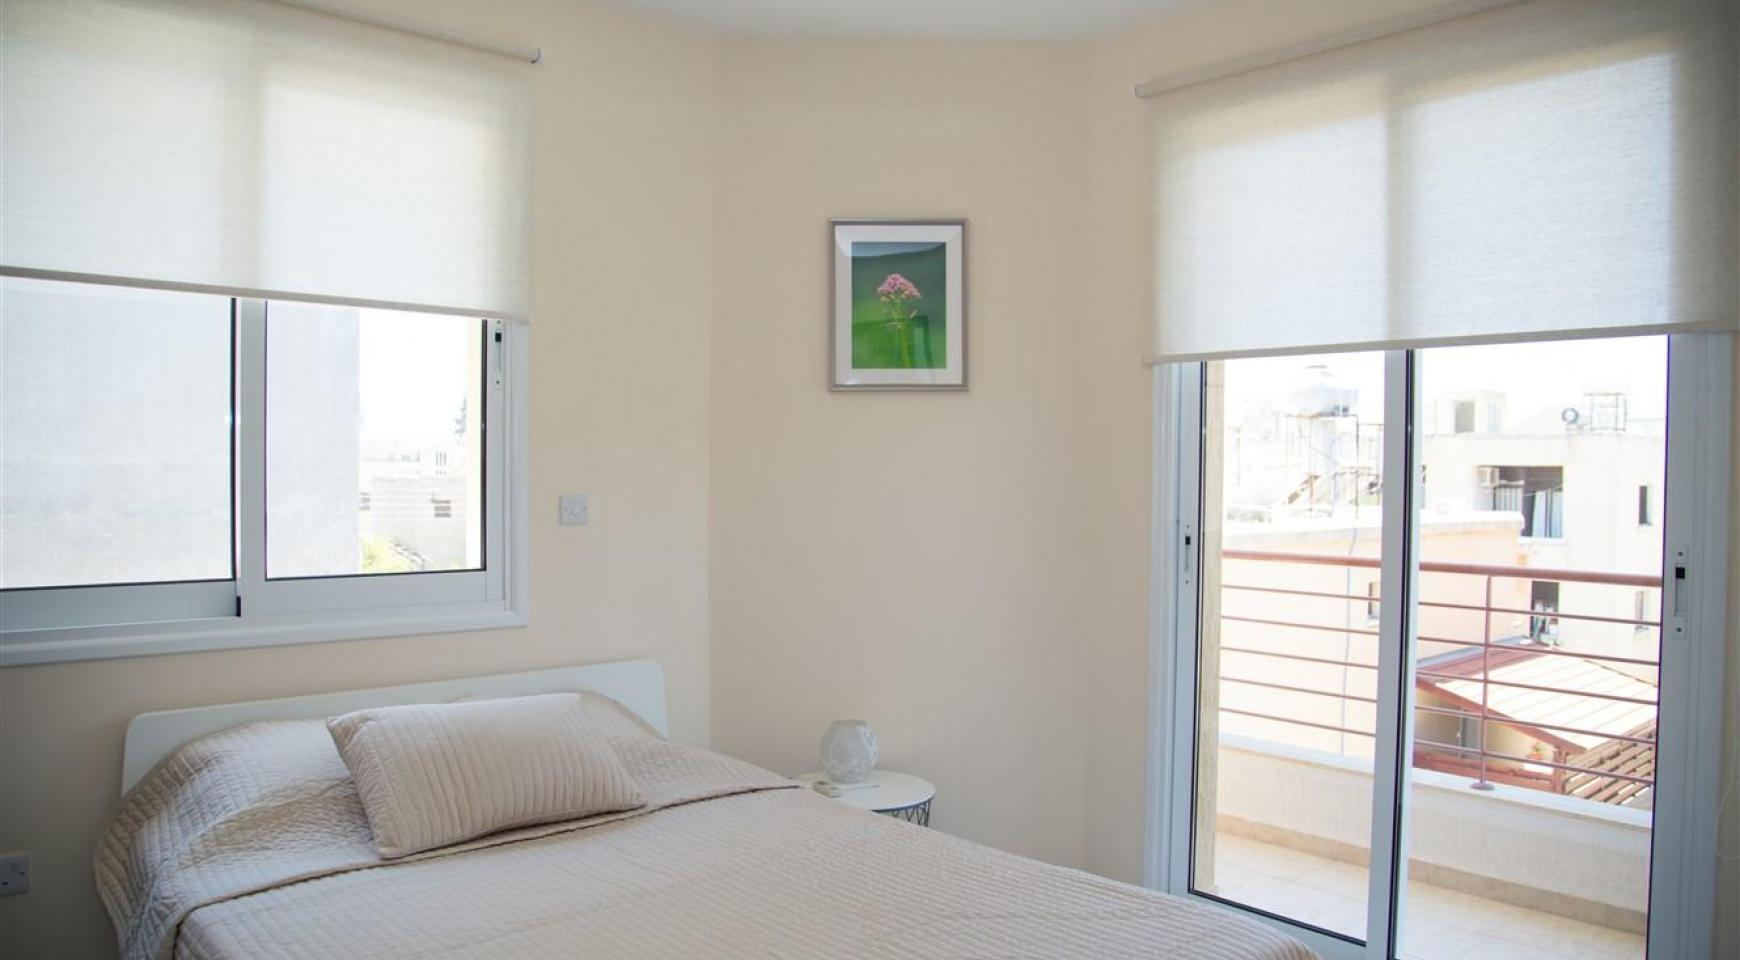 Luxury One Bedroom Apartment Frida 203 in the Tourist Area - 7